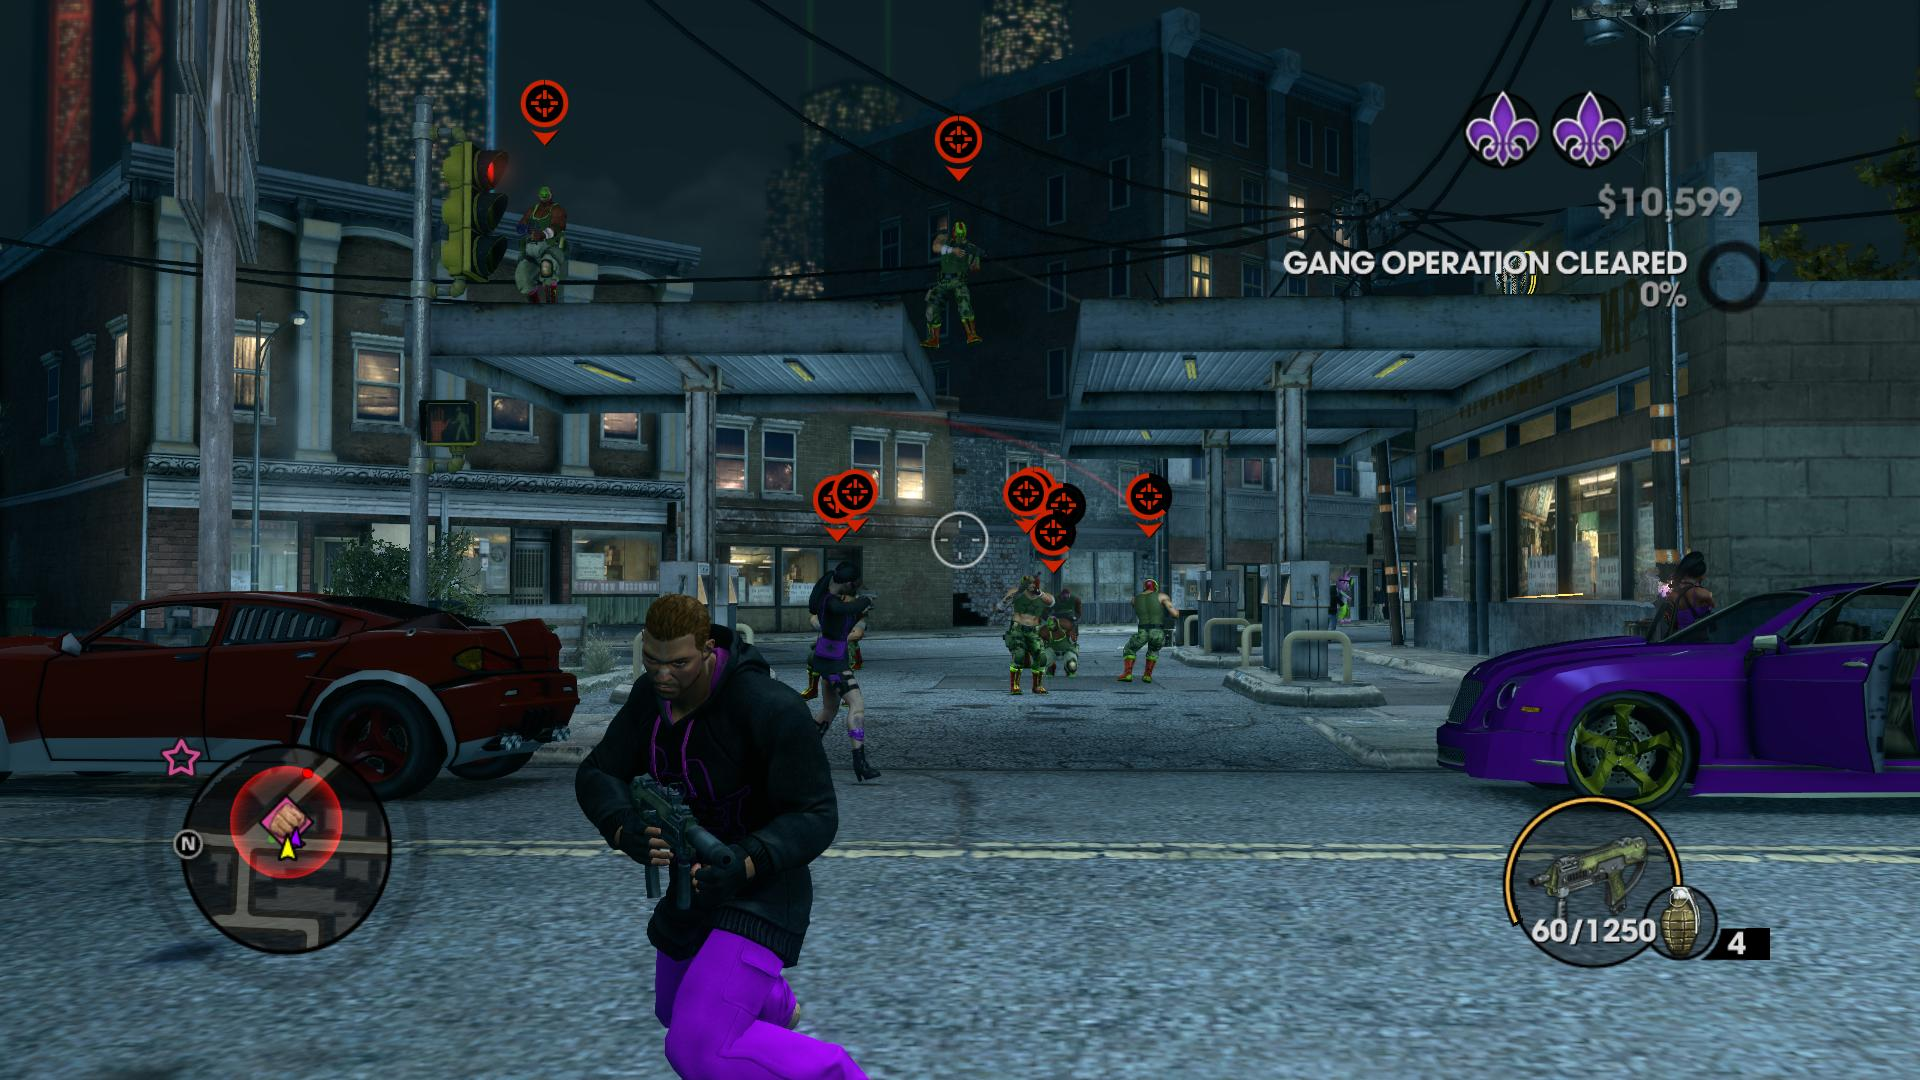 Steam Community :: Guide :: Saints Row: The Third 100% Completion Guide